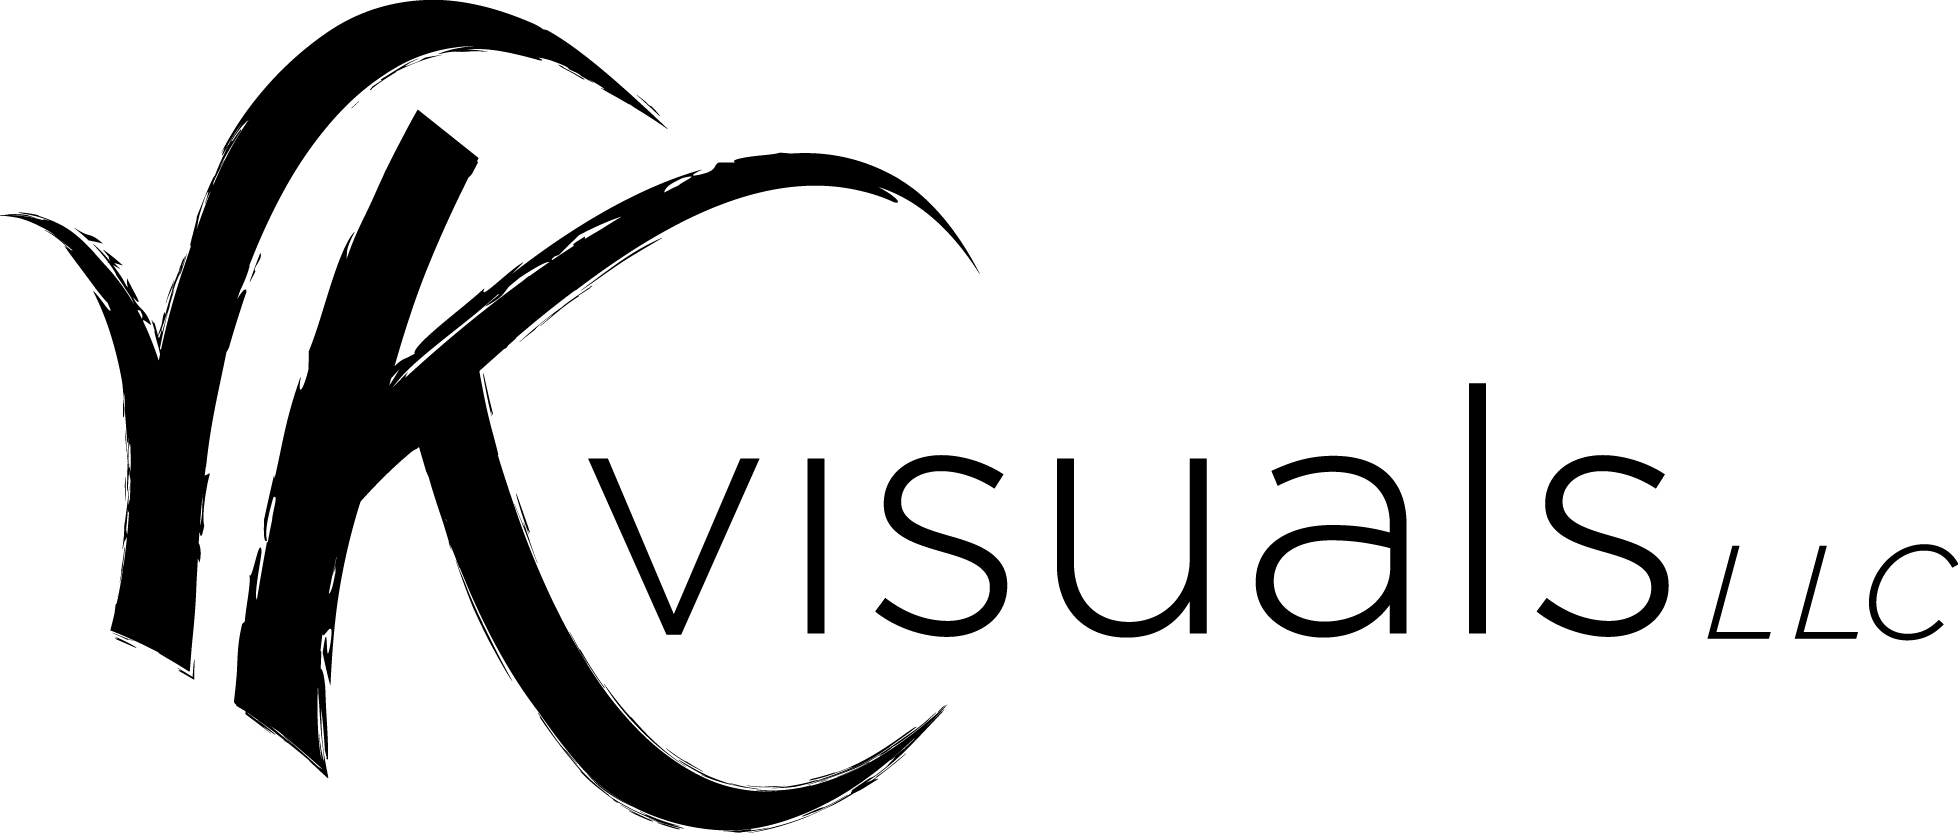 VK Visuals LLC Retina Logo